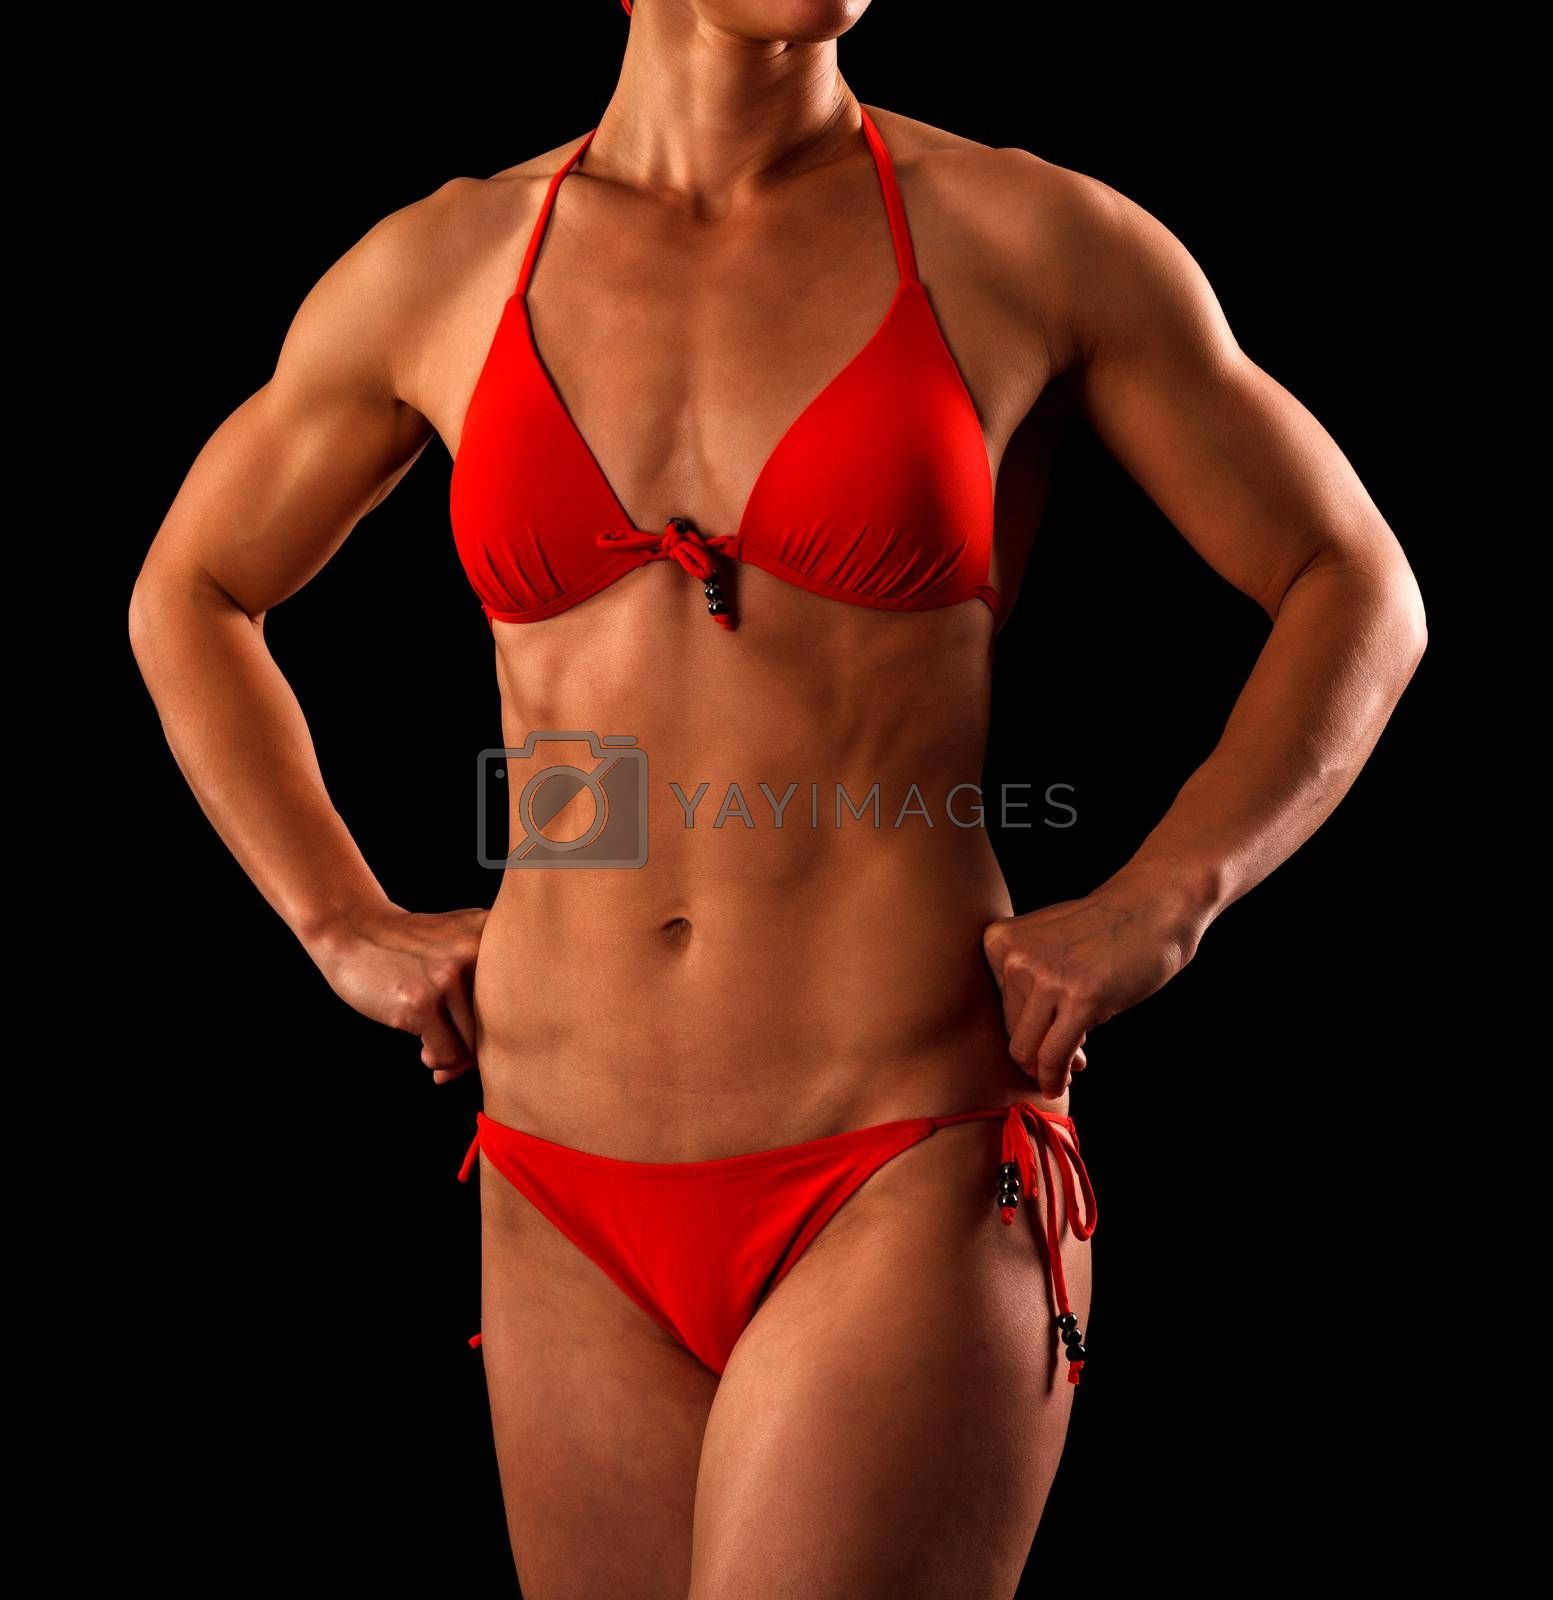 Sexy sports woman in red bikini posing against black background